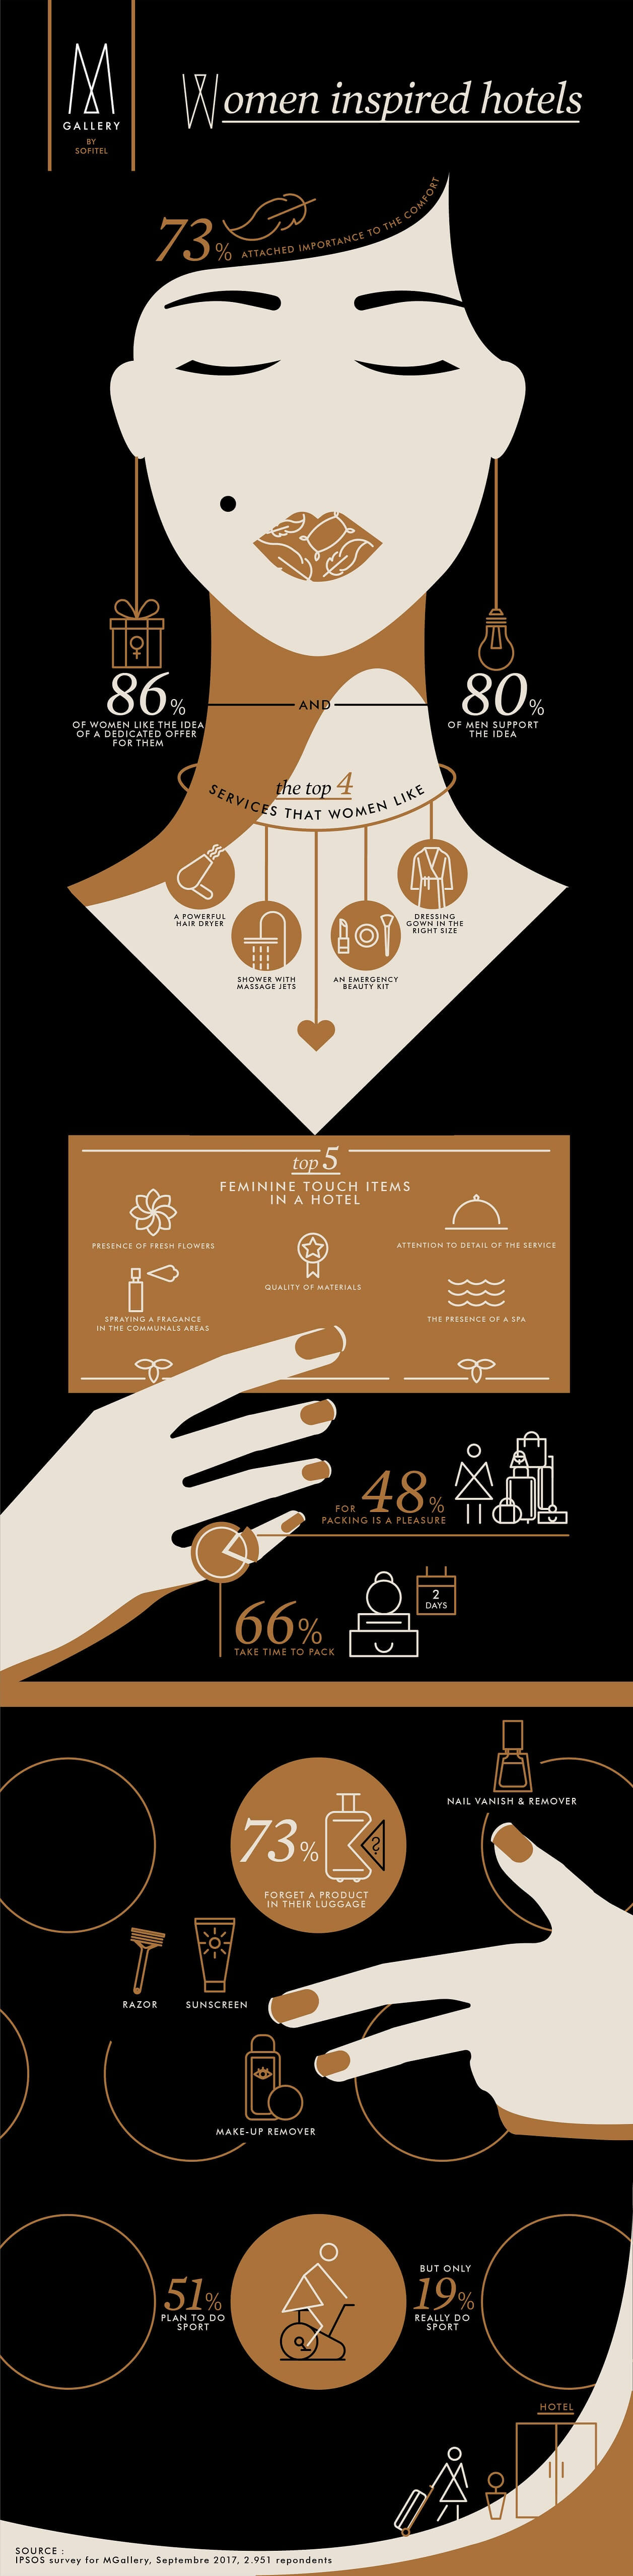 "infography ""Inspired by her"" by MGallery"